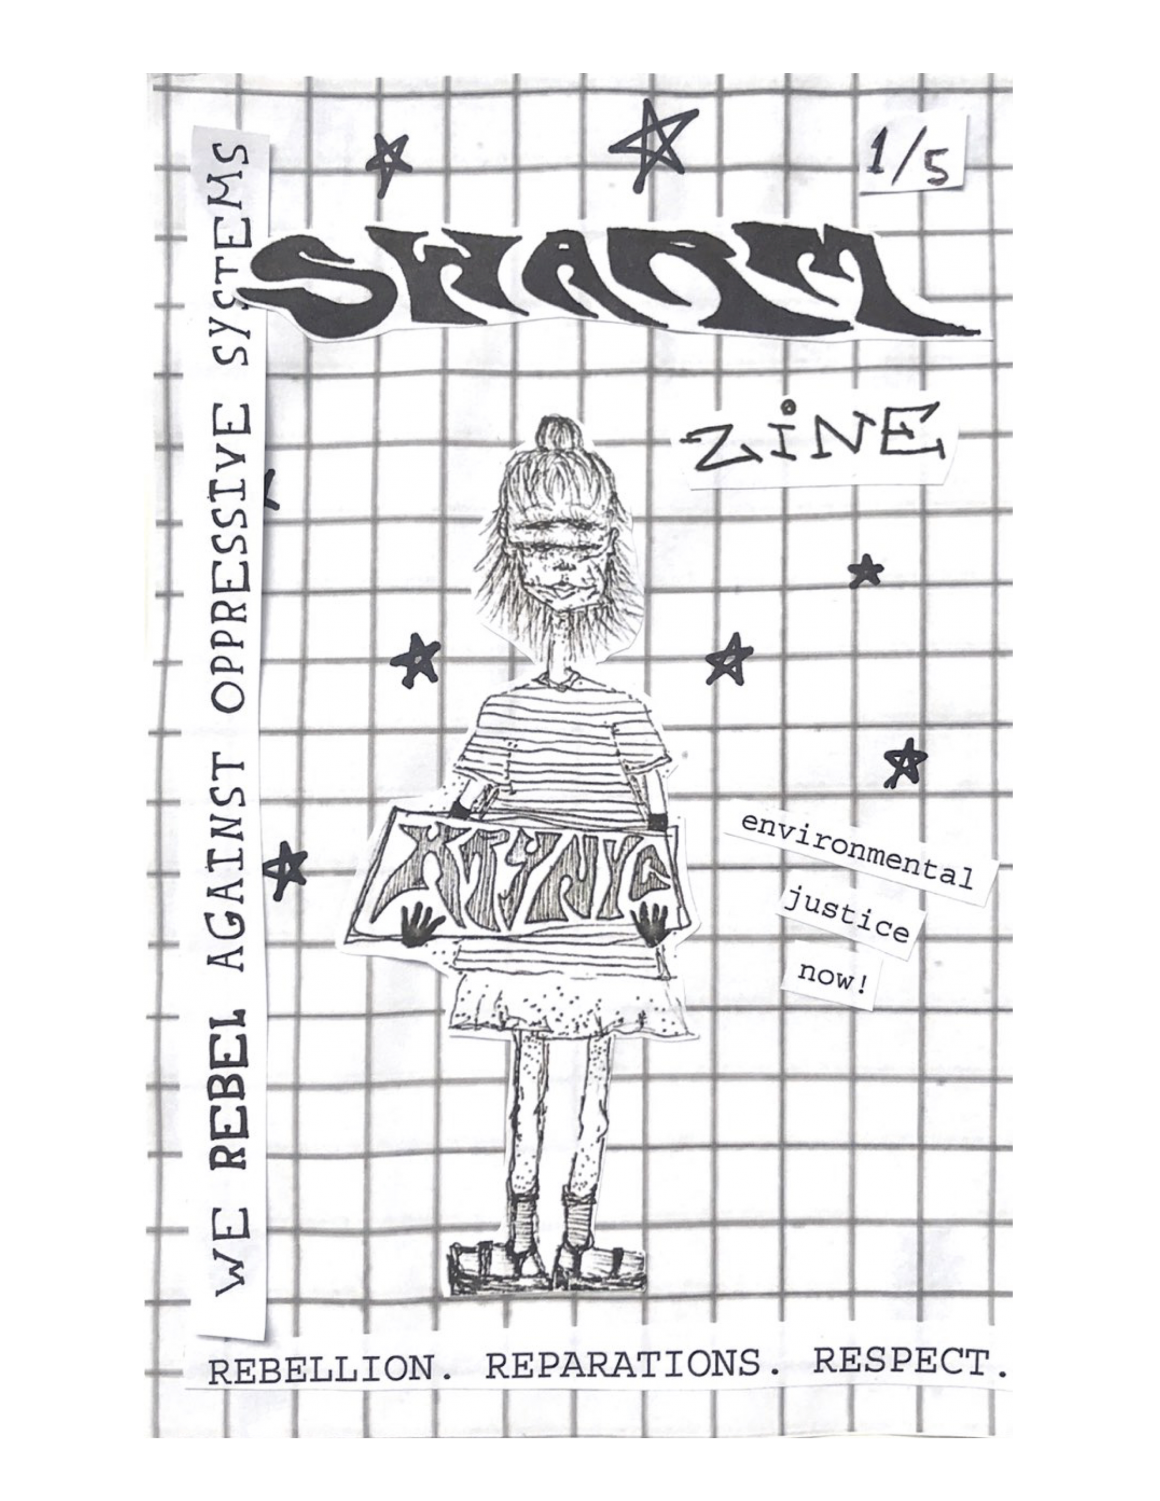 XRYNYC's Swarm Zine was distributed all over New York City. It was used as a tool to educate communities on environmental racism.